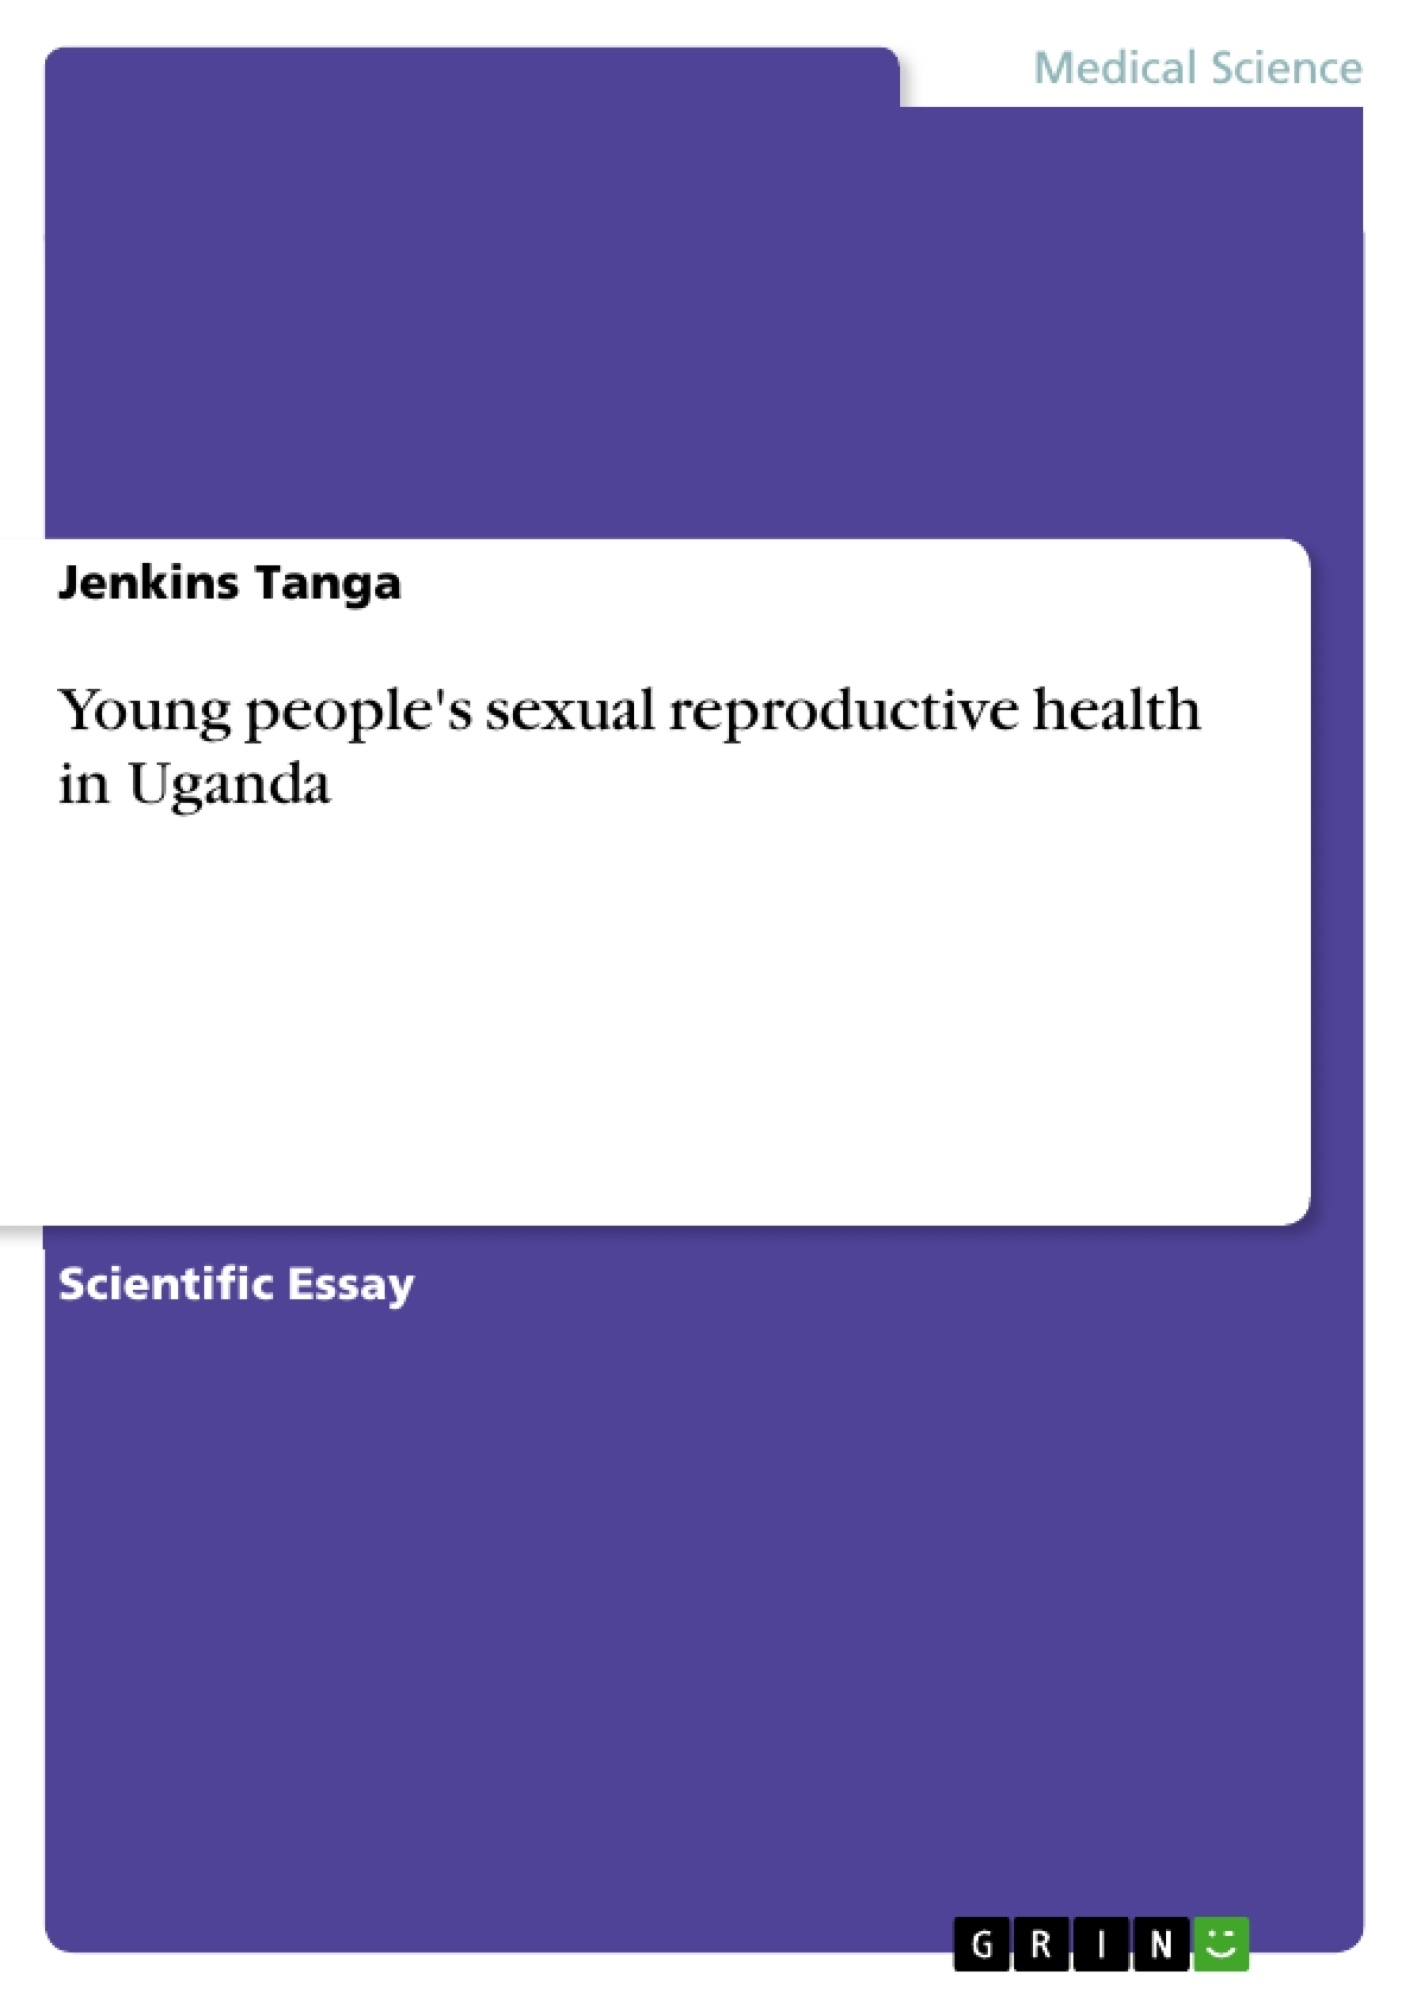 Title: Young people's sexual reproductive health in Uganda